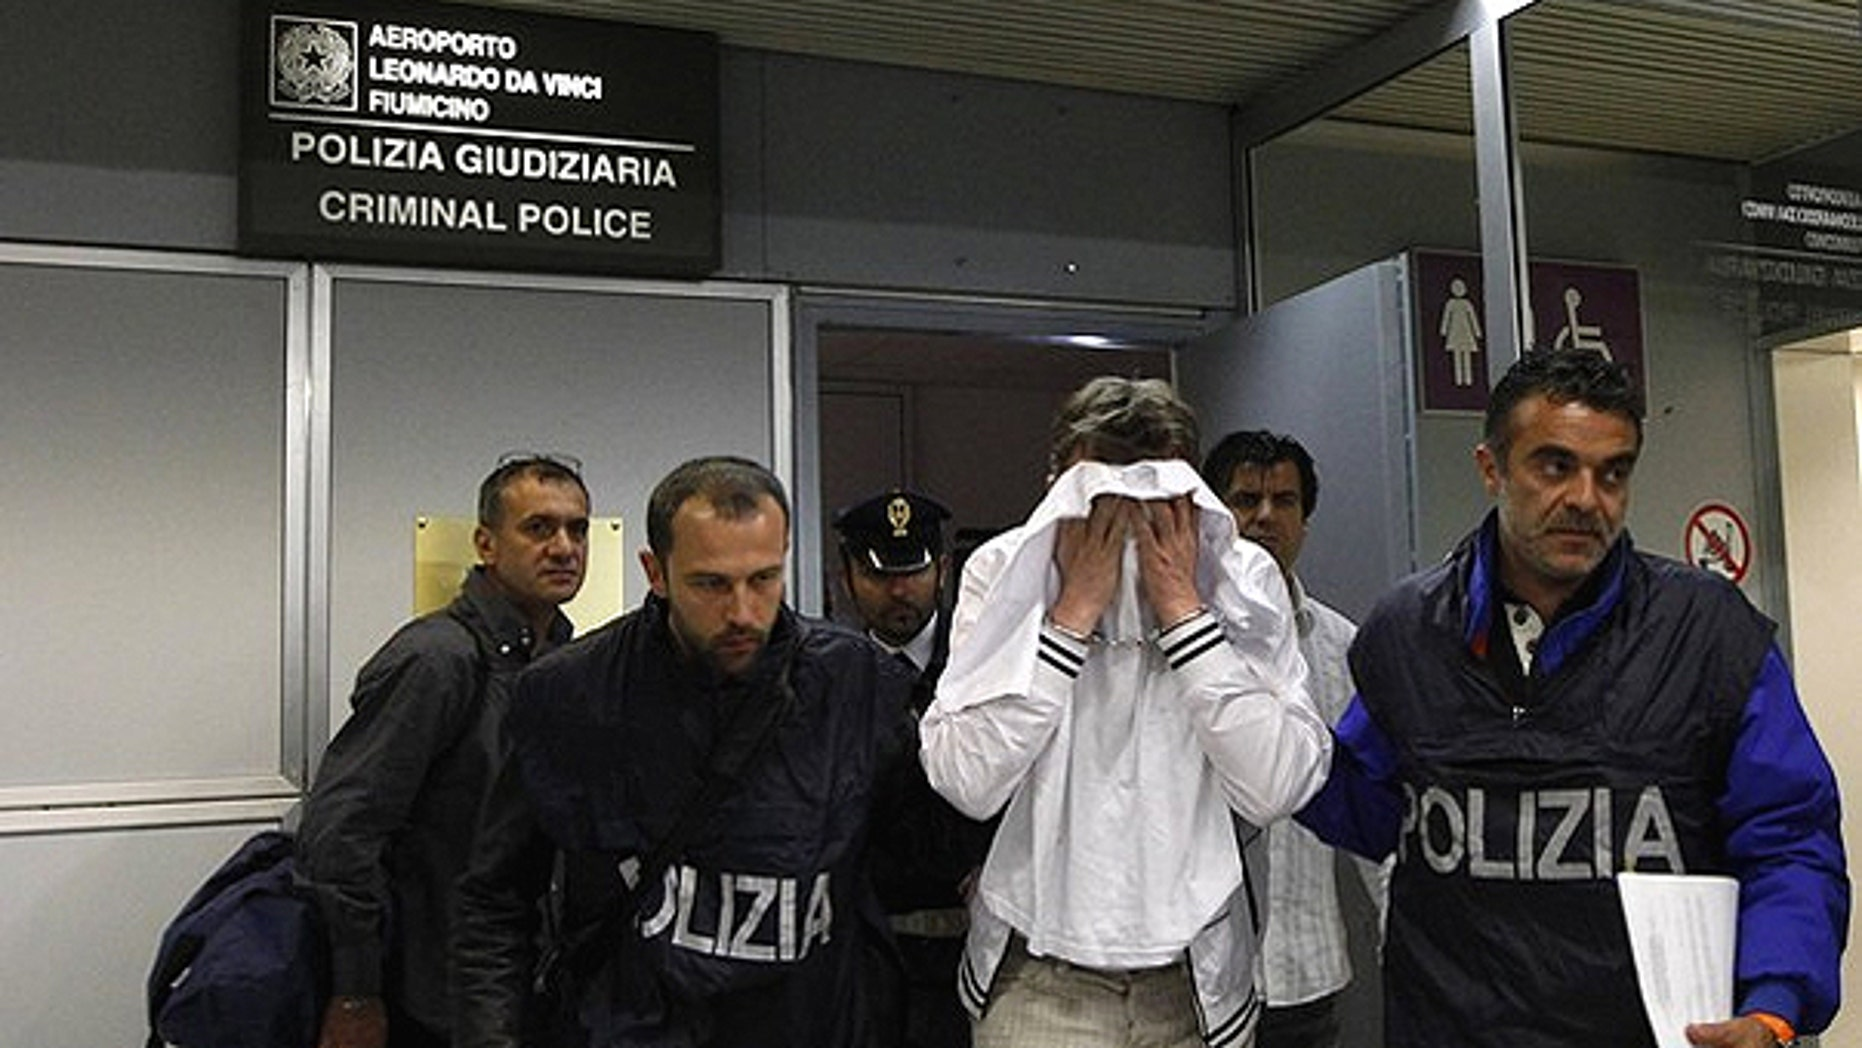 April 25: A man (in white) from Kazakhstan is escorted by police as he leaves Fiumicino airport, northeast Rome. The man, using a knife, tried to hijack an Alitalia flight from Paris to Rome on Sunday night, demanding it be flown to Libya, but was quickly overpowered and arrested when the plane landed, officials and witnesses said.